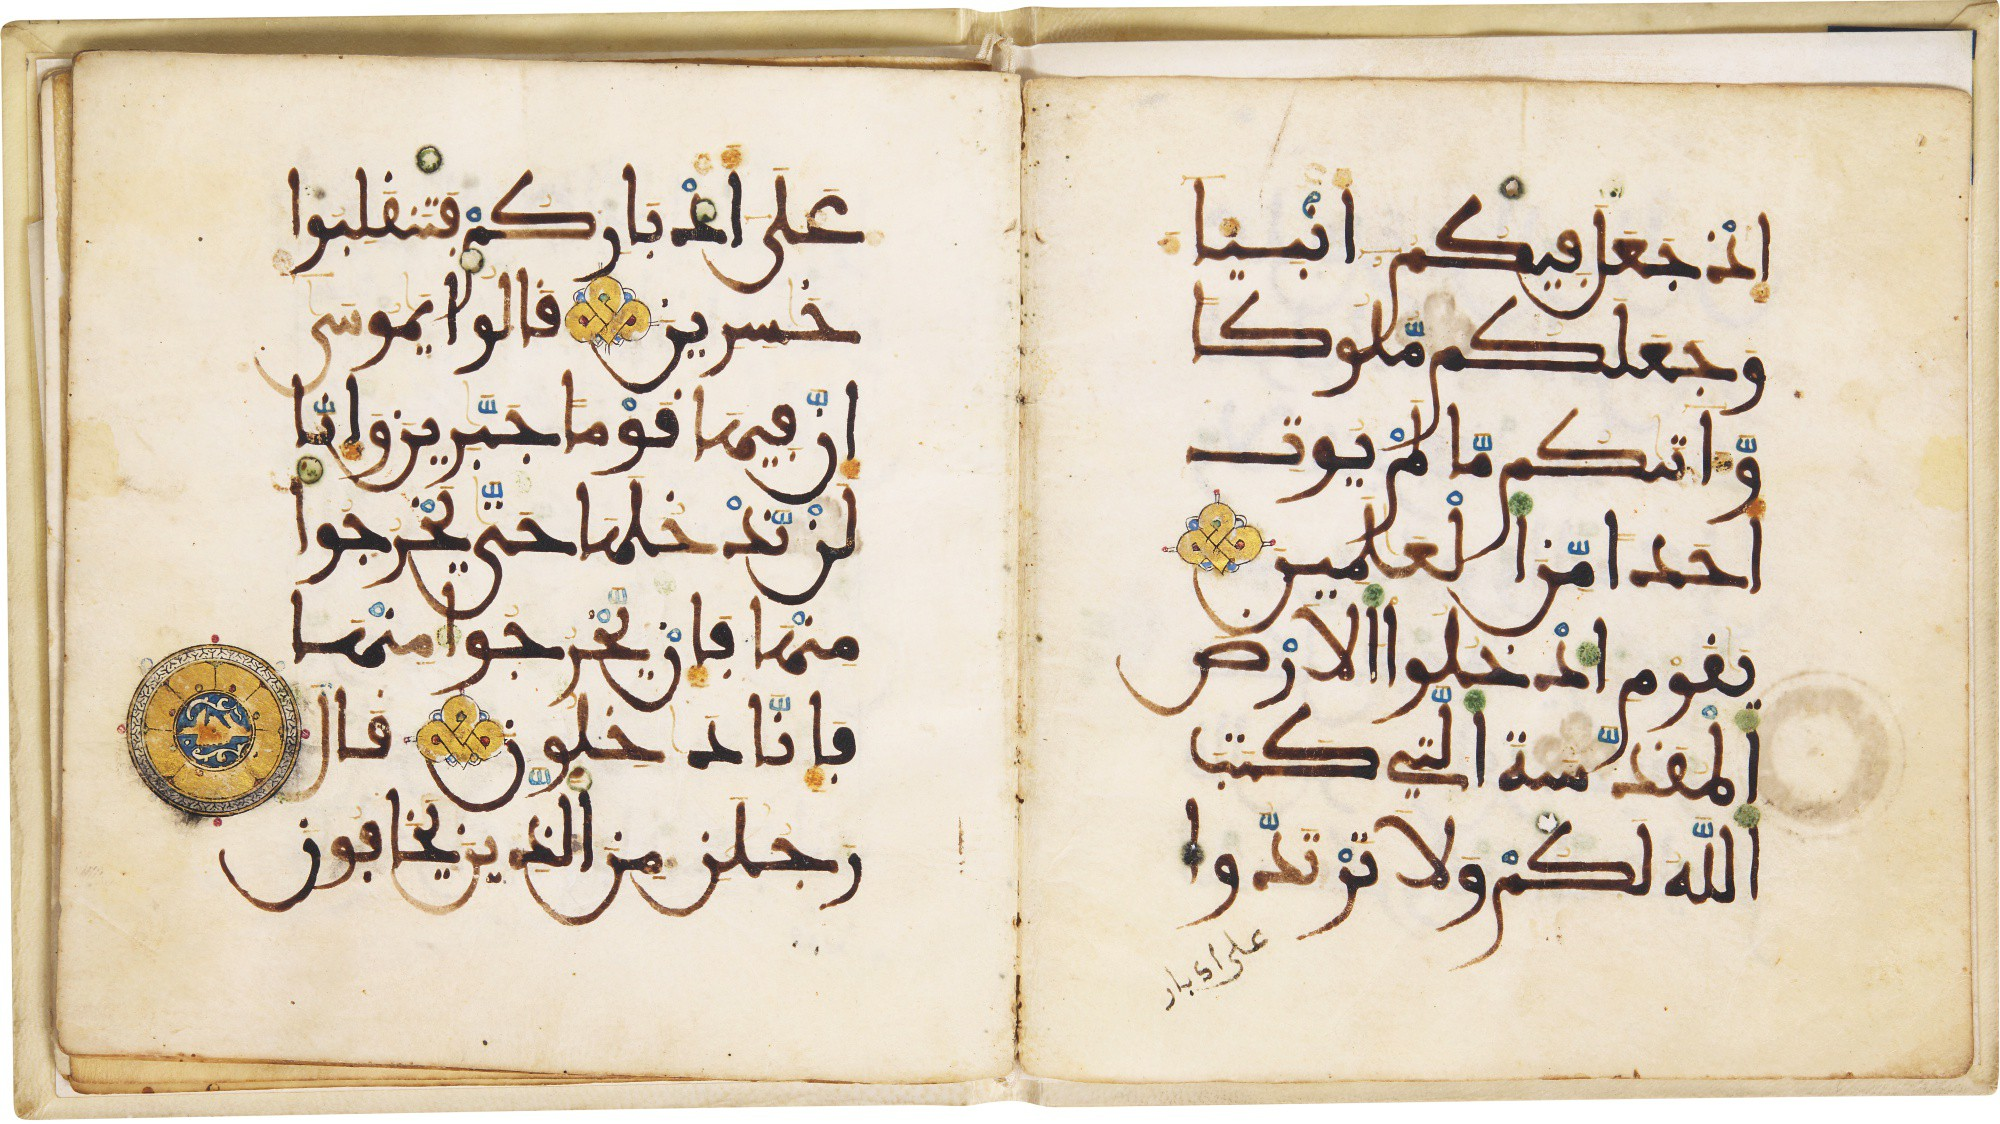 AN ILLUMINATED QUR'AN SECTION IN MAGHRIBI SCRIPT, NORTH AFRICA OR SPAIN, 12TH CENTURY AD